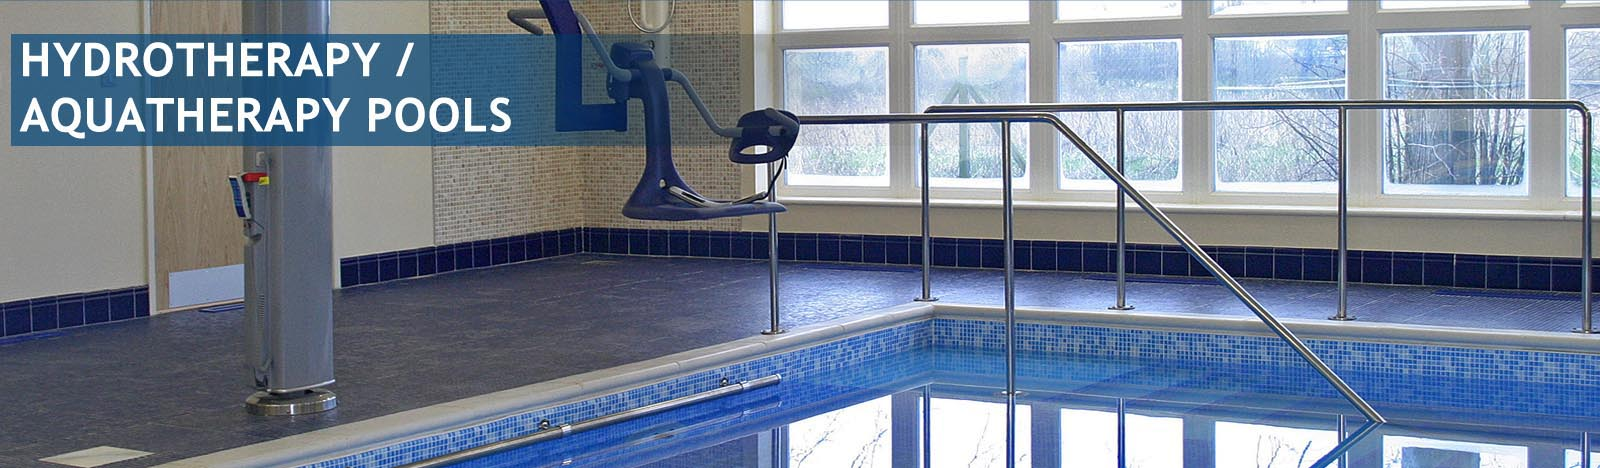 hydrotherapy pools specialists nottingham